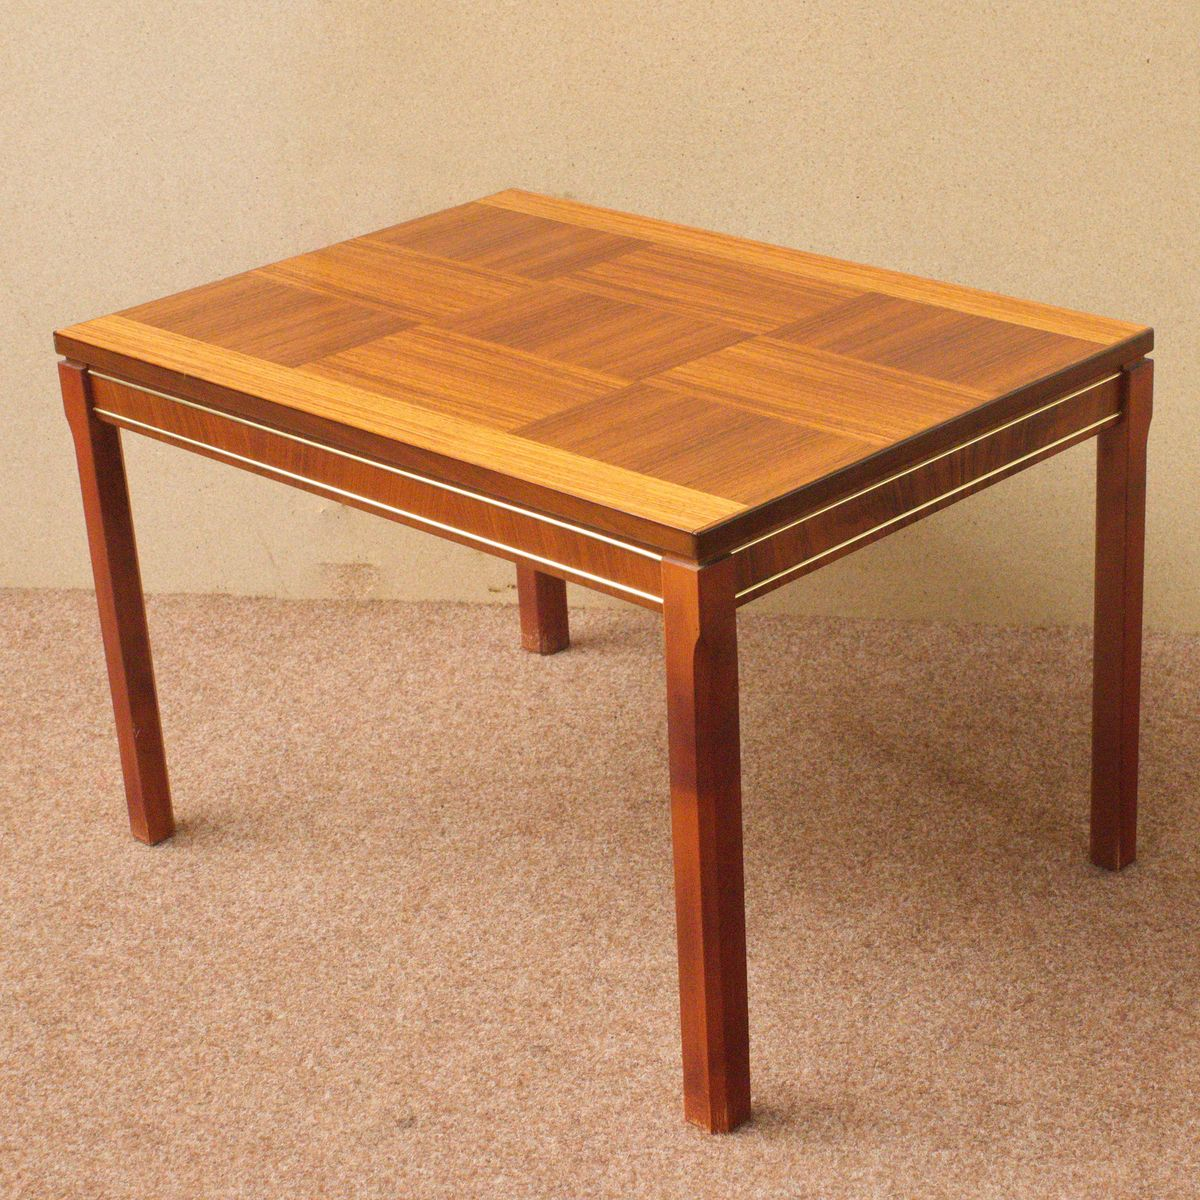 Small Rosewood Teak Side Table With Checkerboard Pattern S - Teak side table with drawer